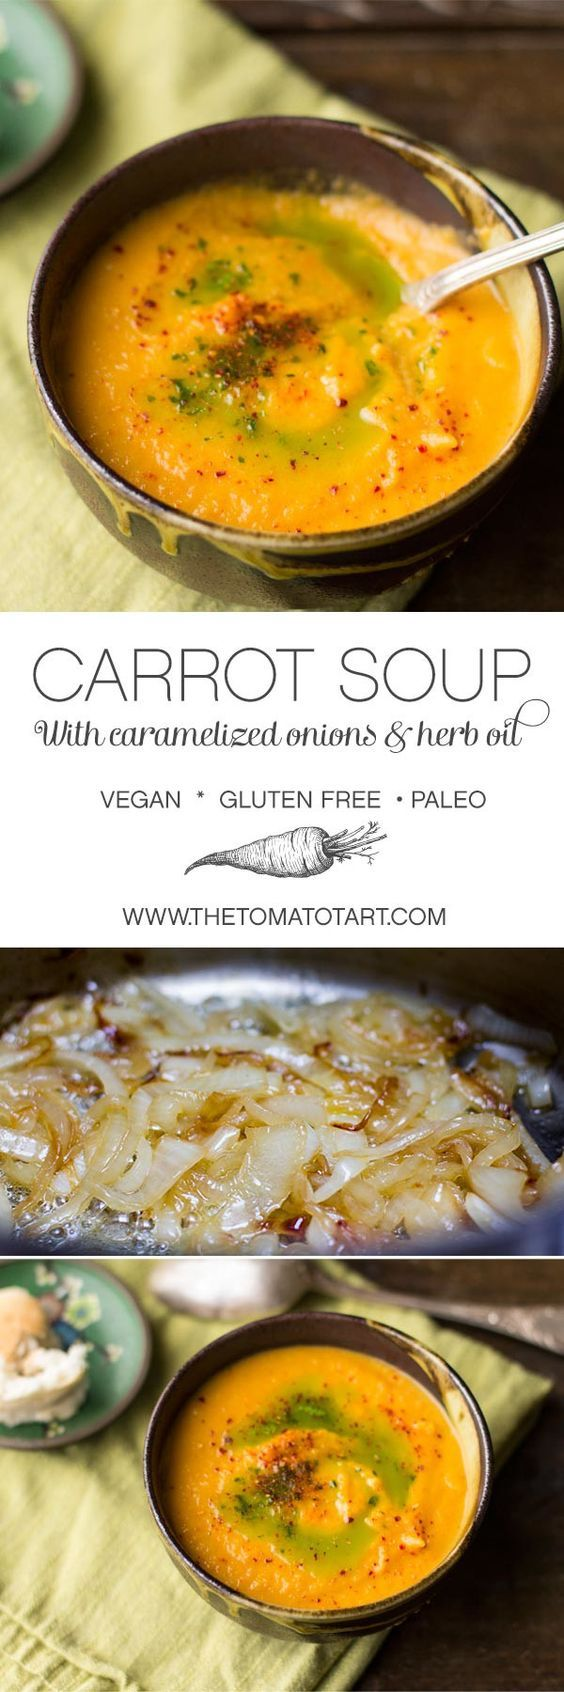 Vegan Carrot Soup with Caramelized Onions (use sweet potatoes to mk it paleo) from http://www.thetomatotart.com